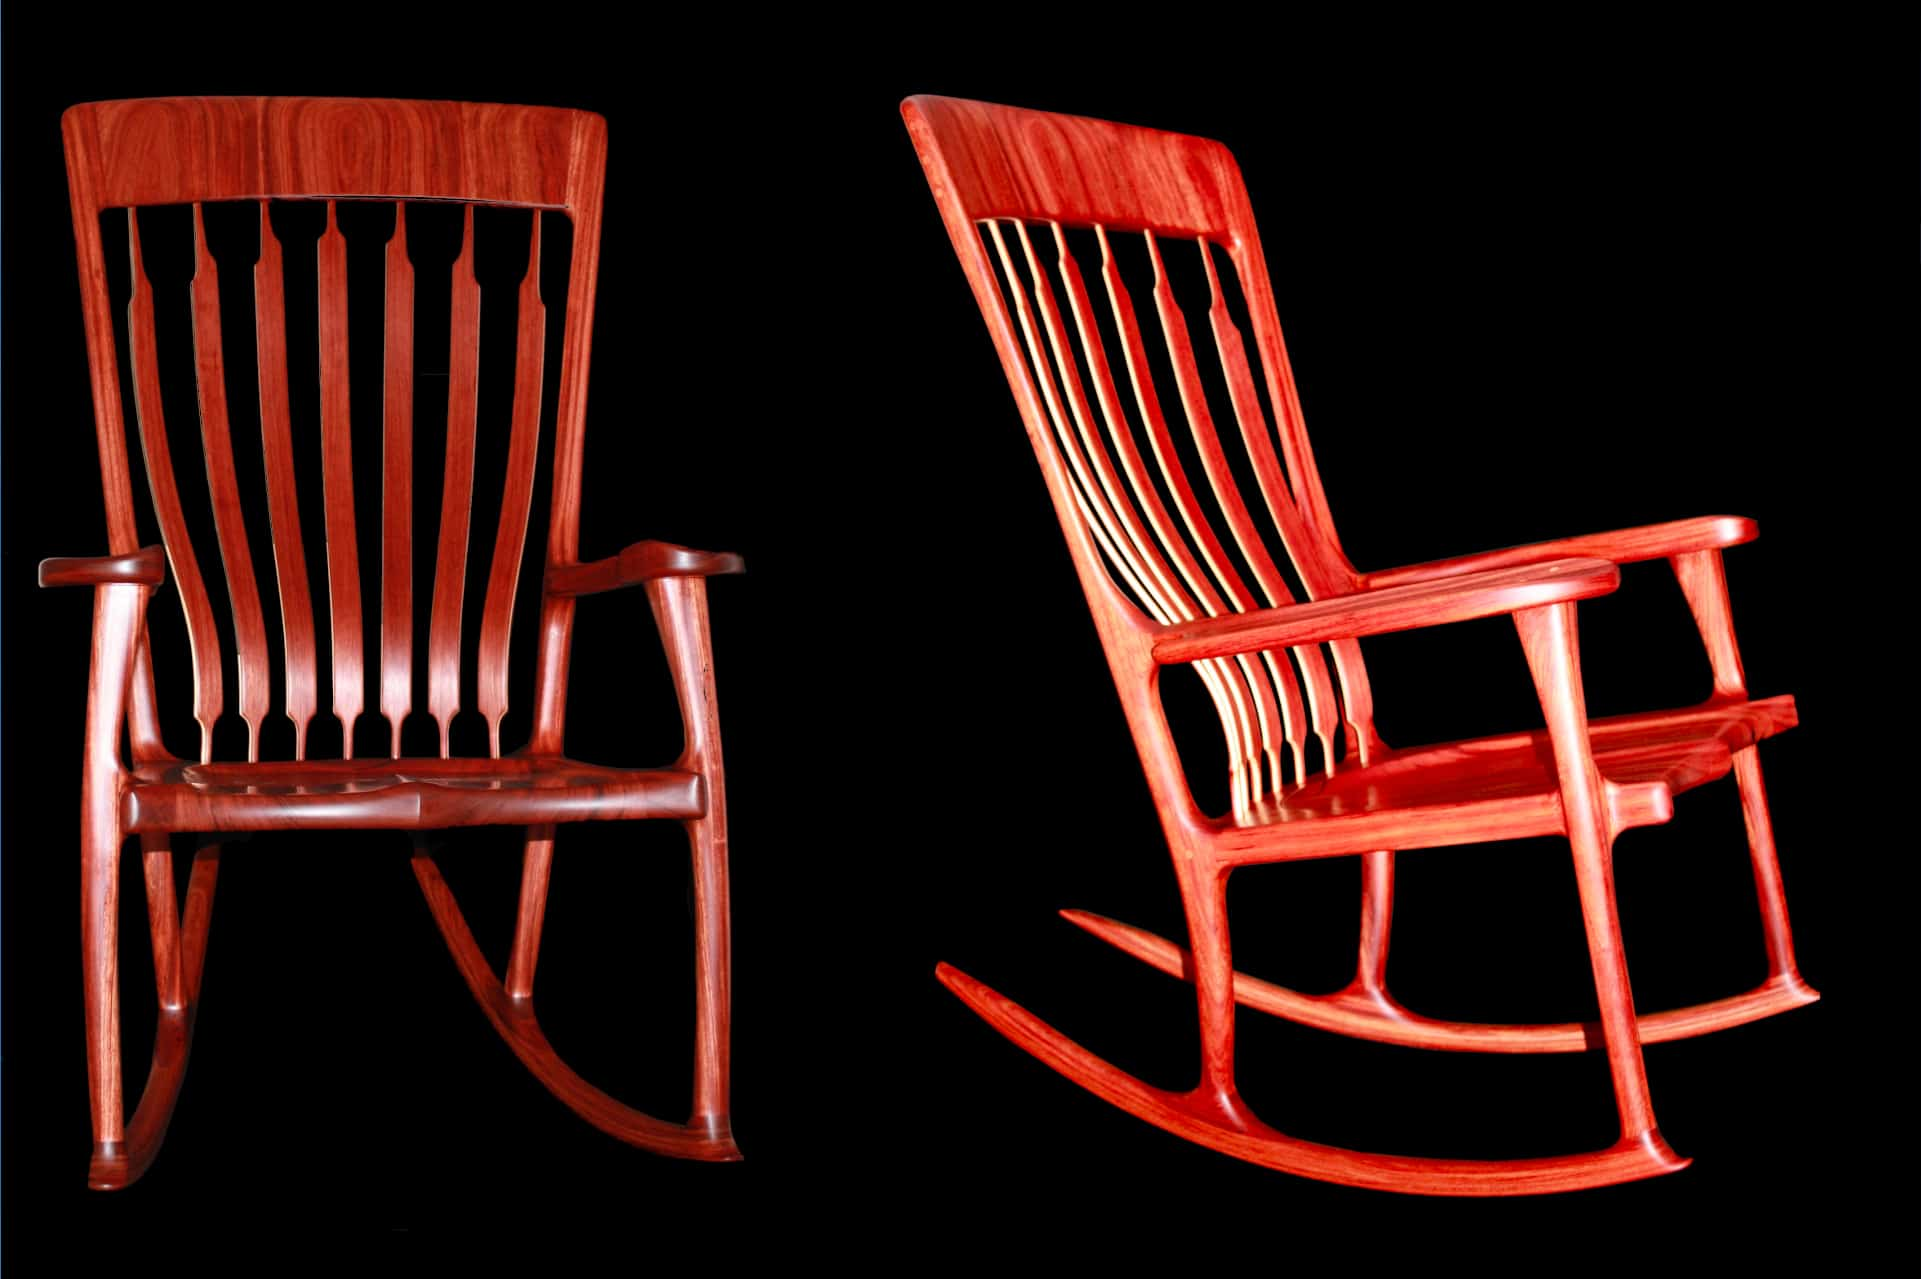 Shop unique, Wooden Rocking Chairs, Windsor Chairs, handmade furniture, Colonial American Furniture, Rocking Chair, Outdoor Rocker, Mark Stephens, The Wooden Wish, Parker, Colorado